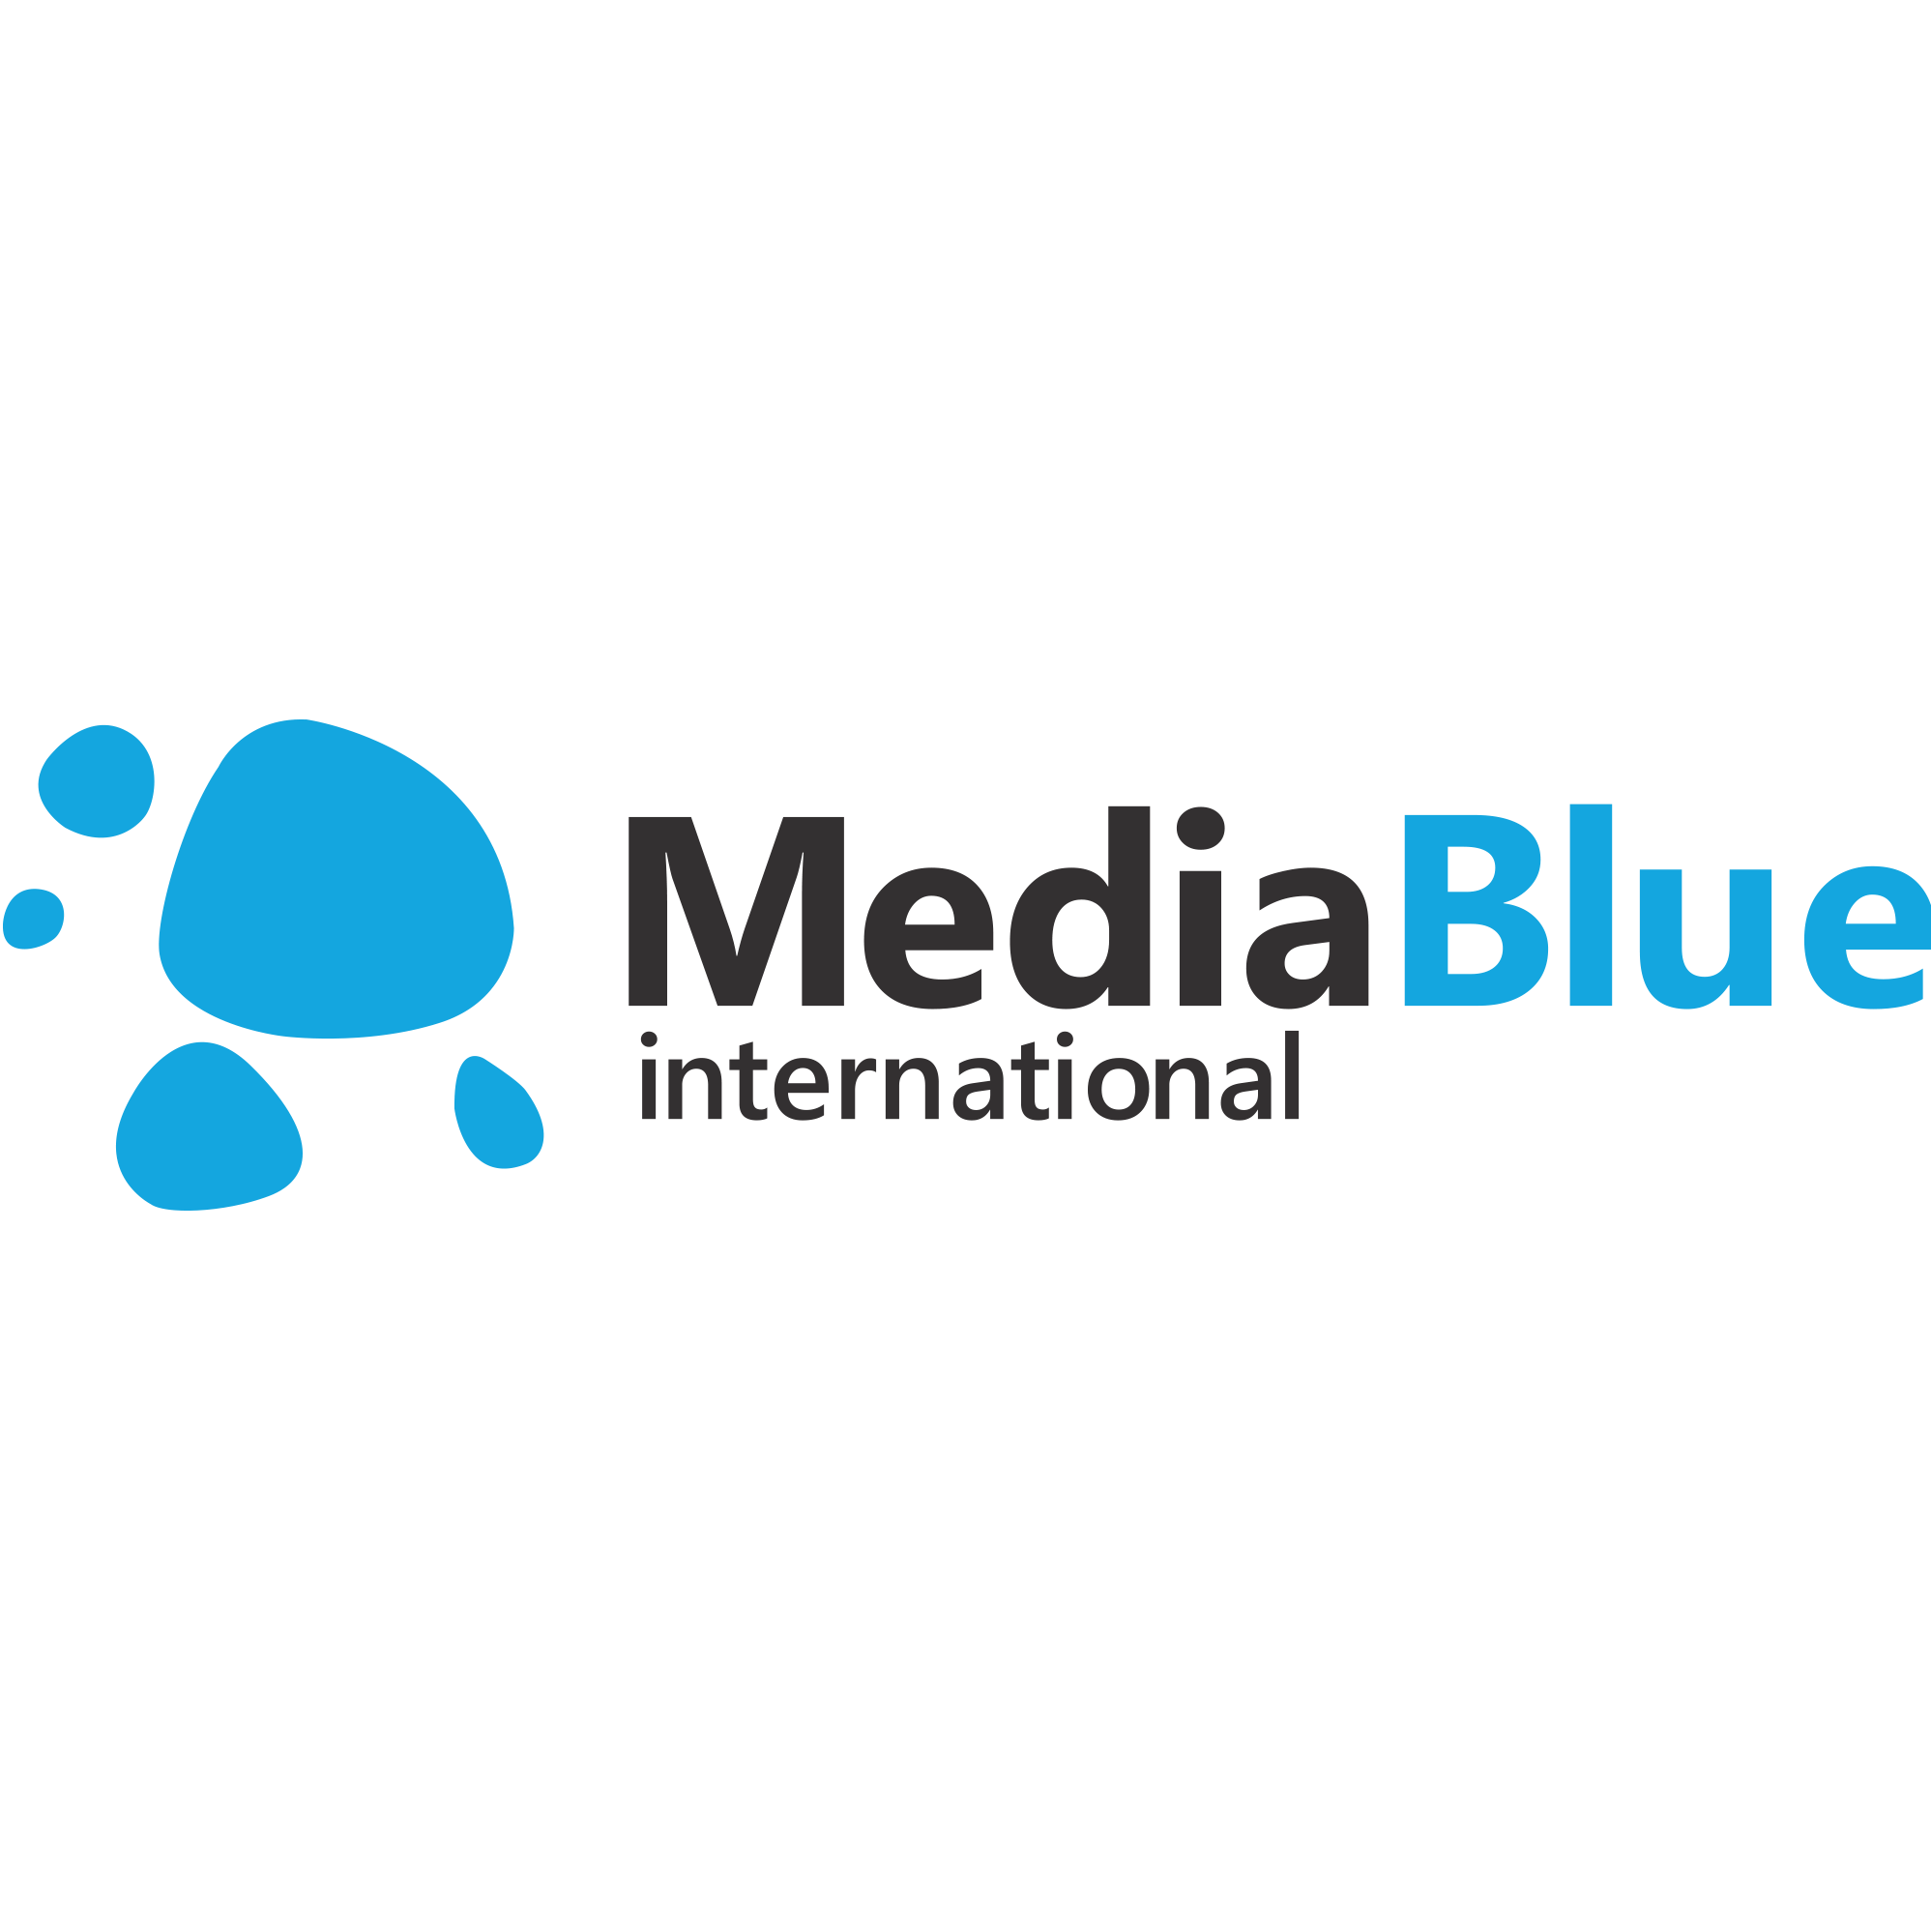 Media Blue International